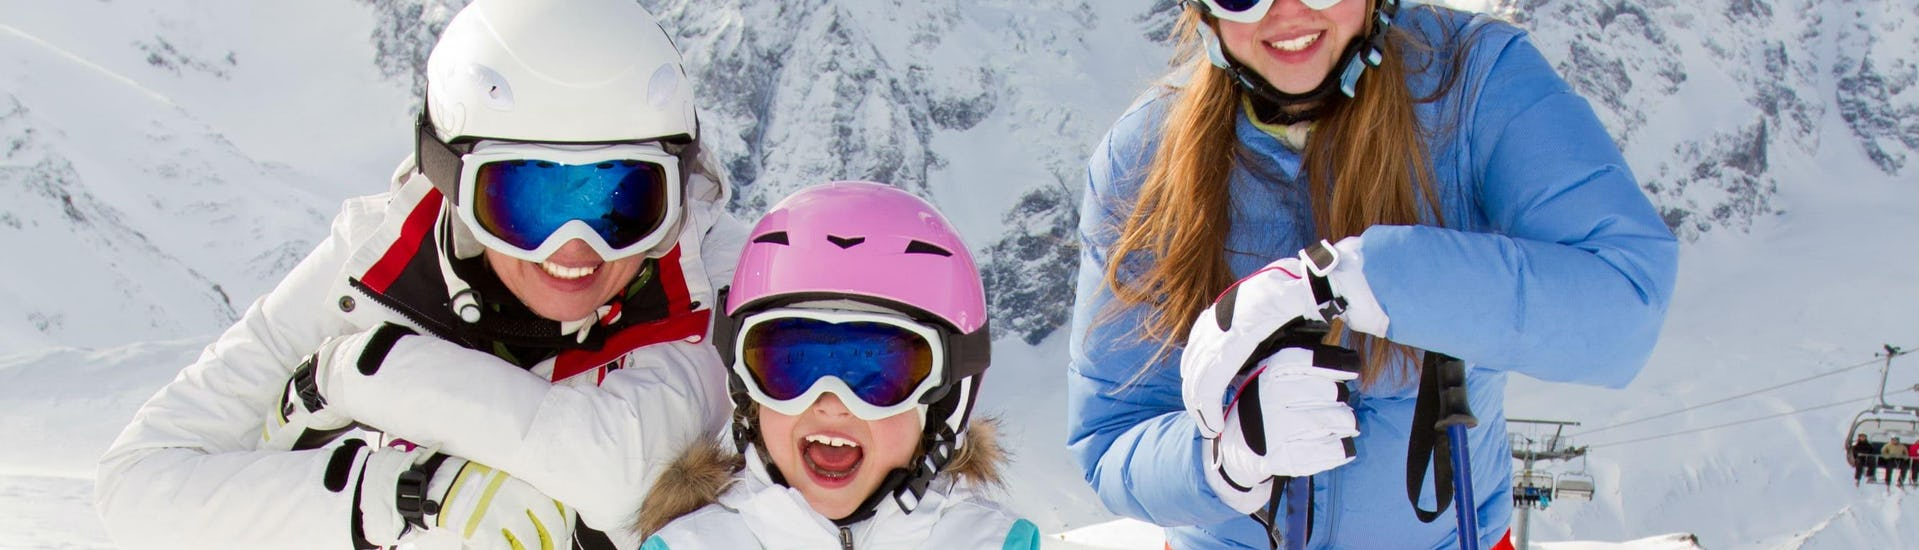 Ski Lessons (6-12 years) - Low Season - All Levels